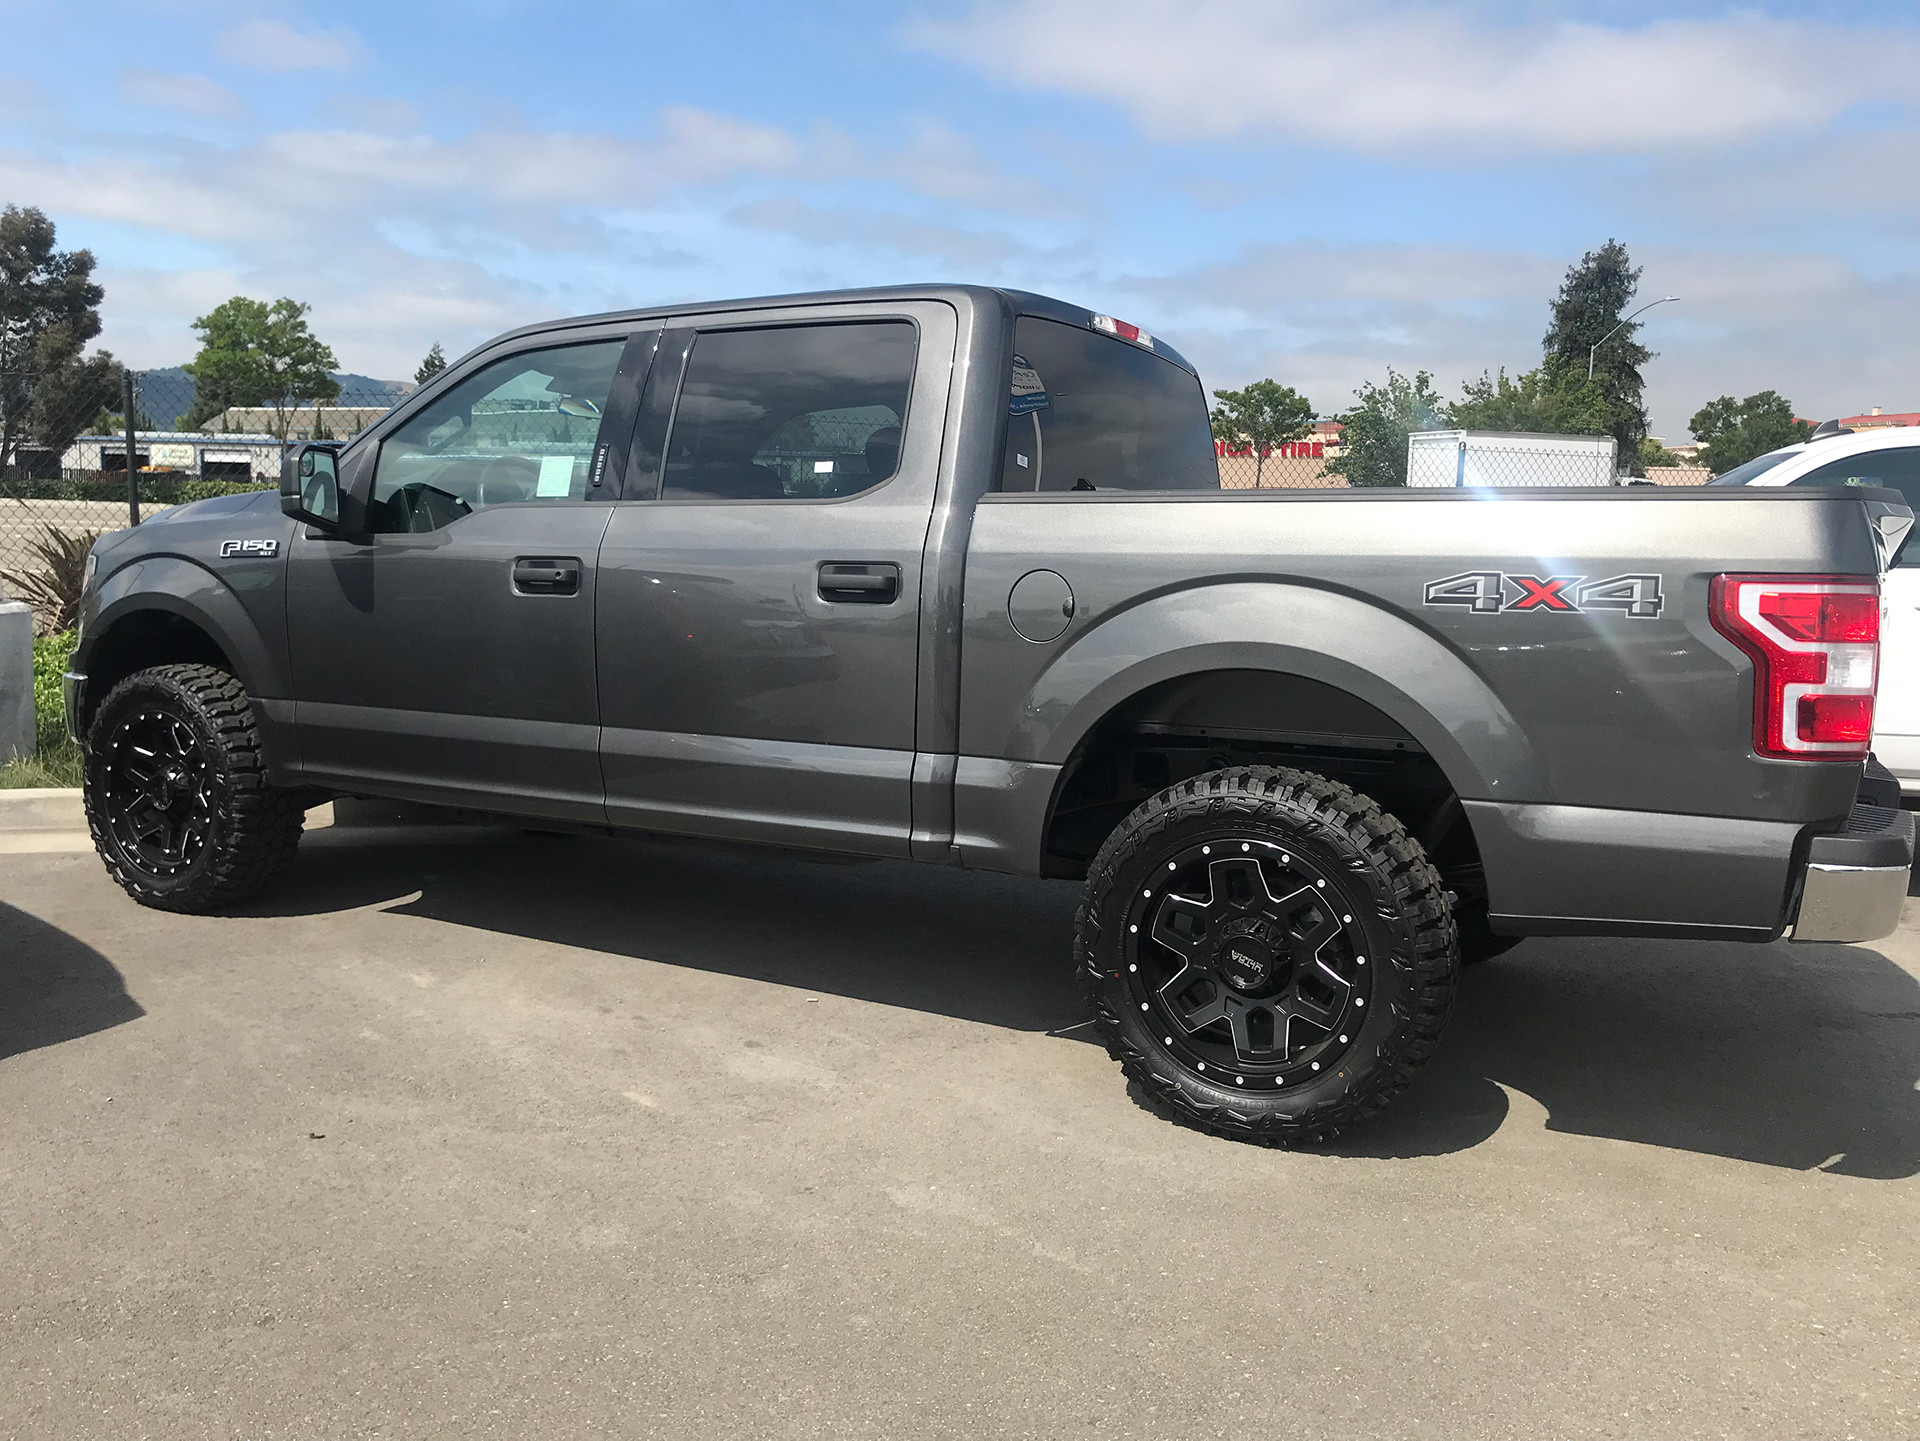 "2018 Ford F-150 4x4 Leveled 20"" Ultra 217 Warlock wrapped in 33x12.50R20 off road tires"